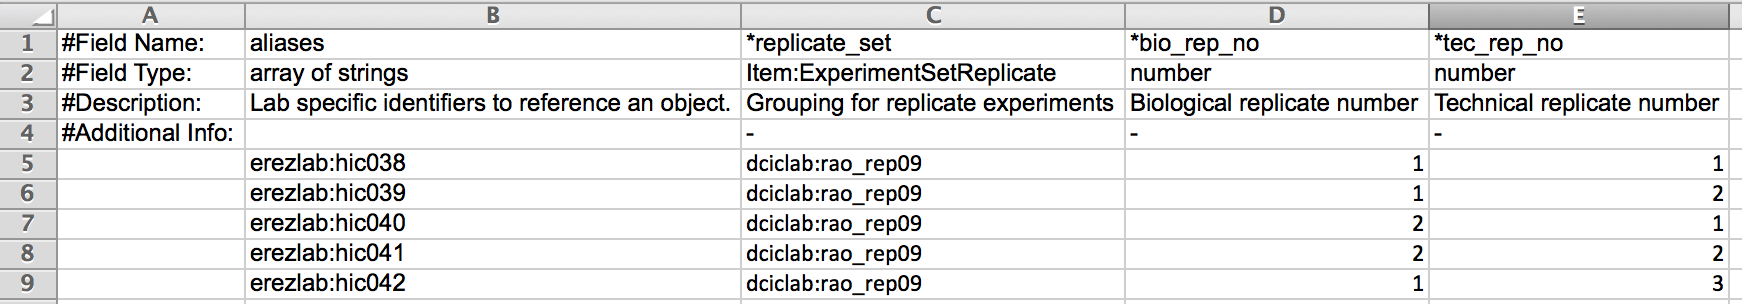 Experiments with replicate info example